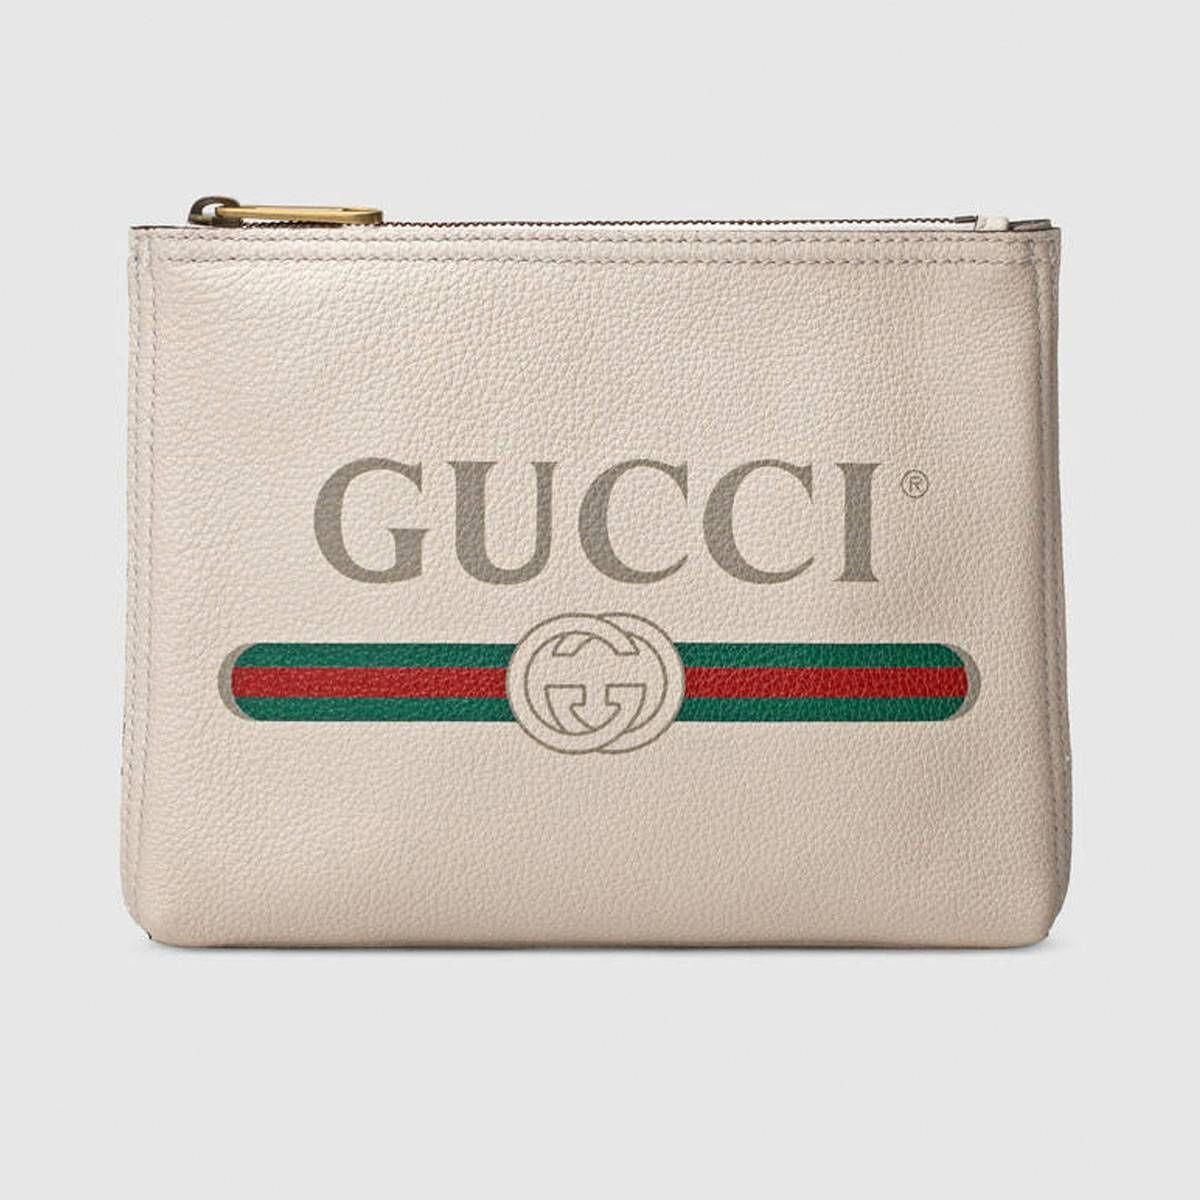 49078f430b01 Best Gucci Handbags: From Marmont to Dionysus and More | Who What Wear UK # guccihandbags